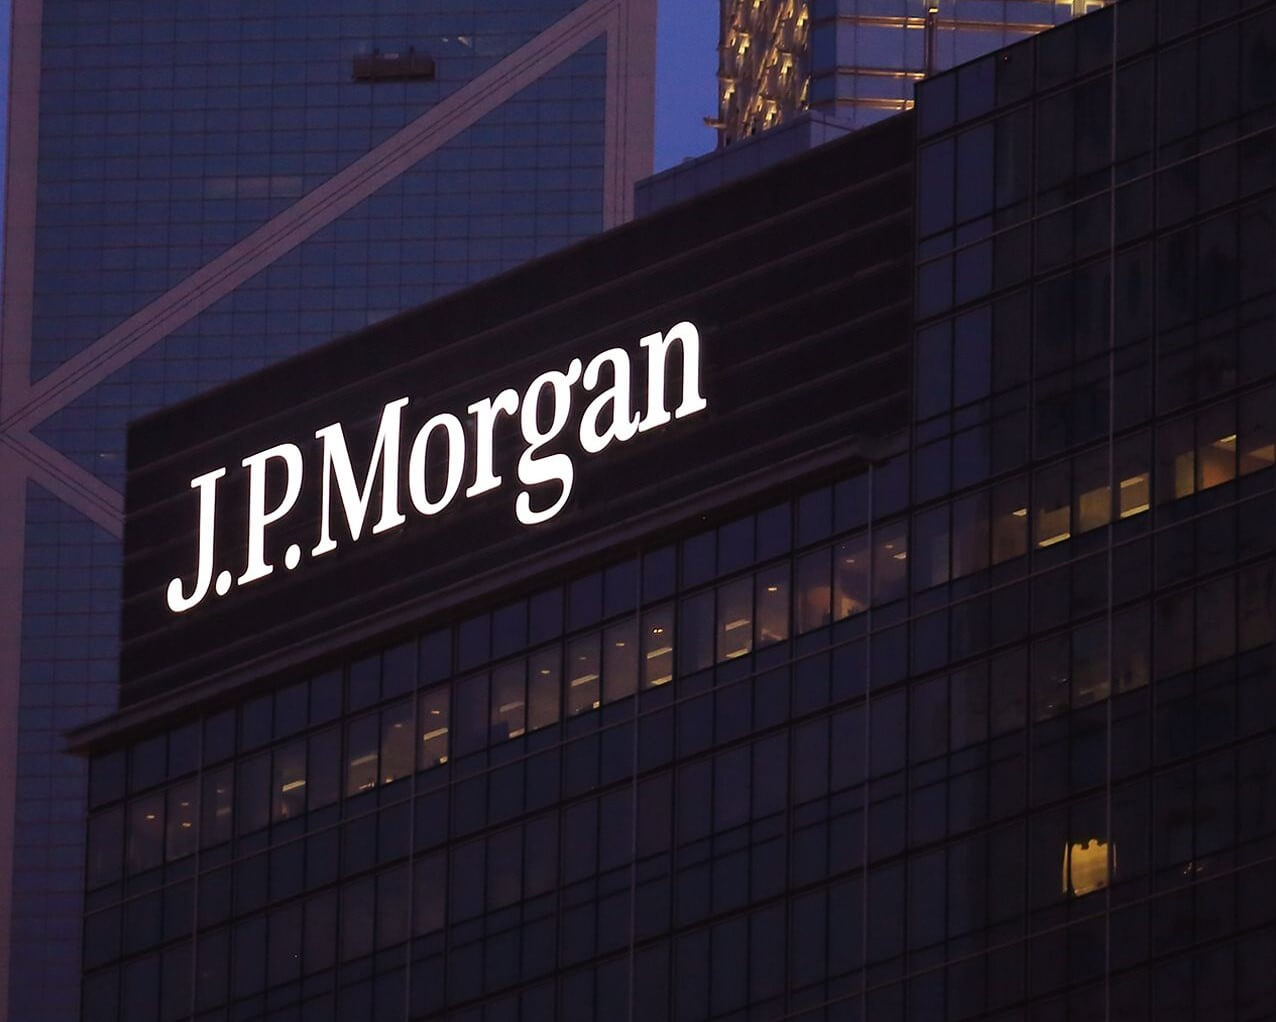 REVAMPED RECRUITMENT STANDARDS FOR J.P MORGAN TO HELP RECRUIT YOUNG BLOOD